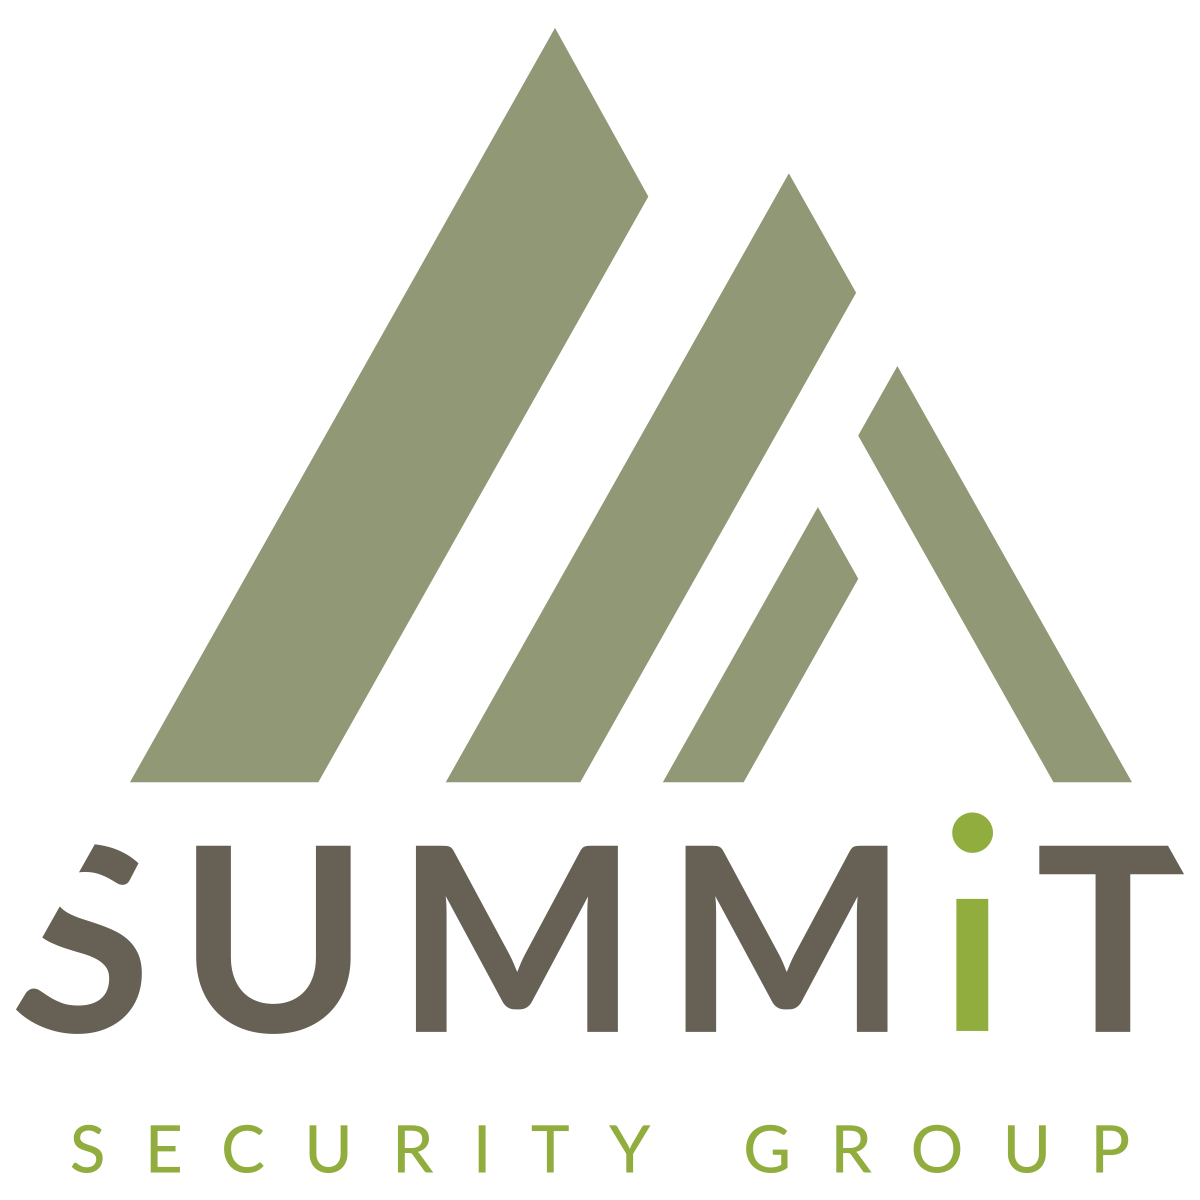 Summit Security Group